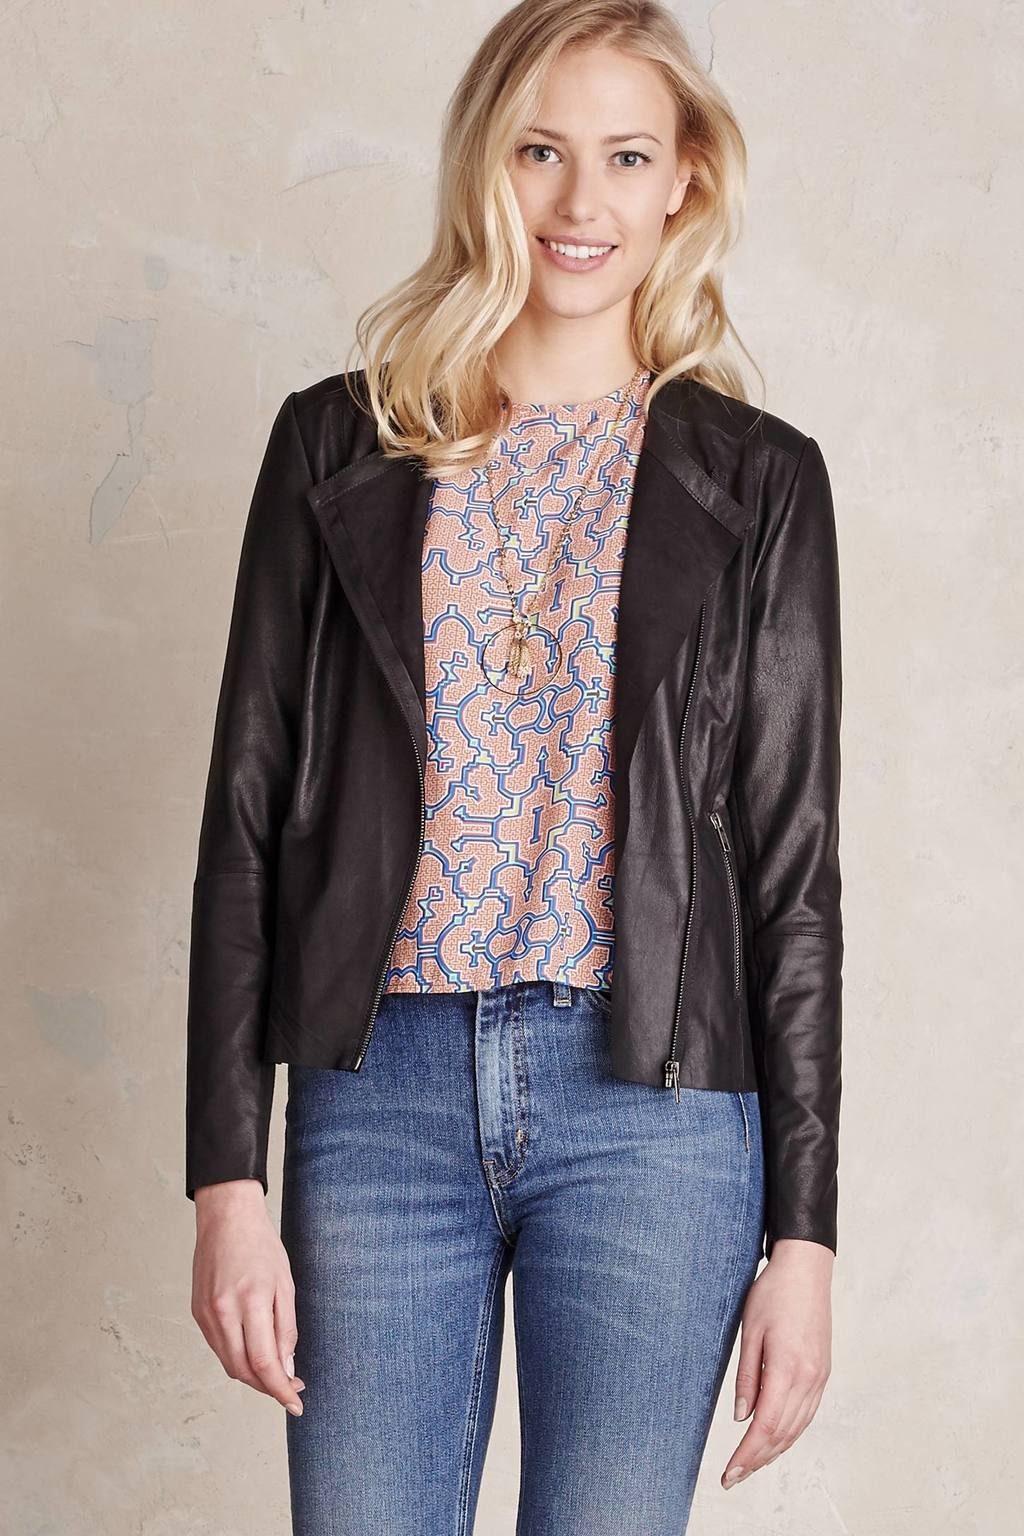 Amba Leather Jacket - pattern: plain; style: biker; collar: asymmetric biker; predominant colour: black; occasions: casual, creative work; length: standard; fit: tailored/fitted; fibres: leather - 100%; sleeve length: long sleeve; sleeve style: standard; texture group: leather; collar break: high/illusion of break when open; pattern type: fabric; season: s/s 2016